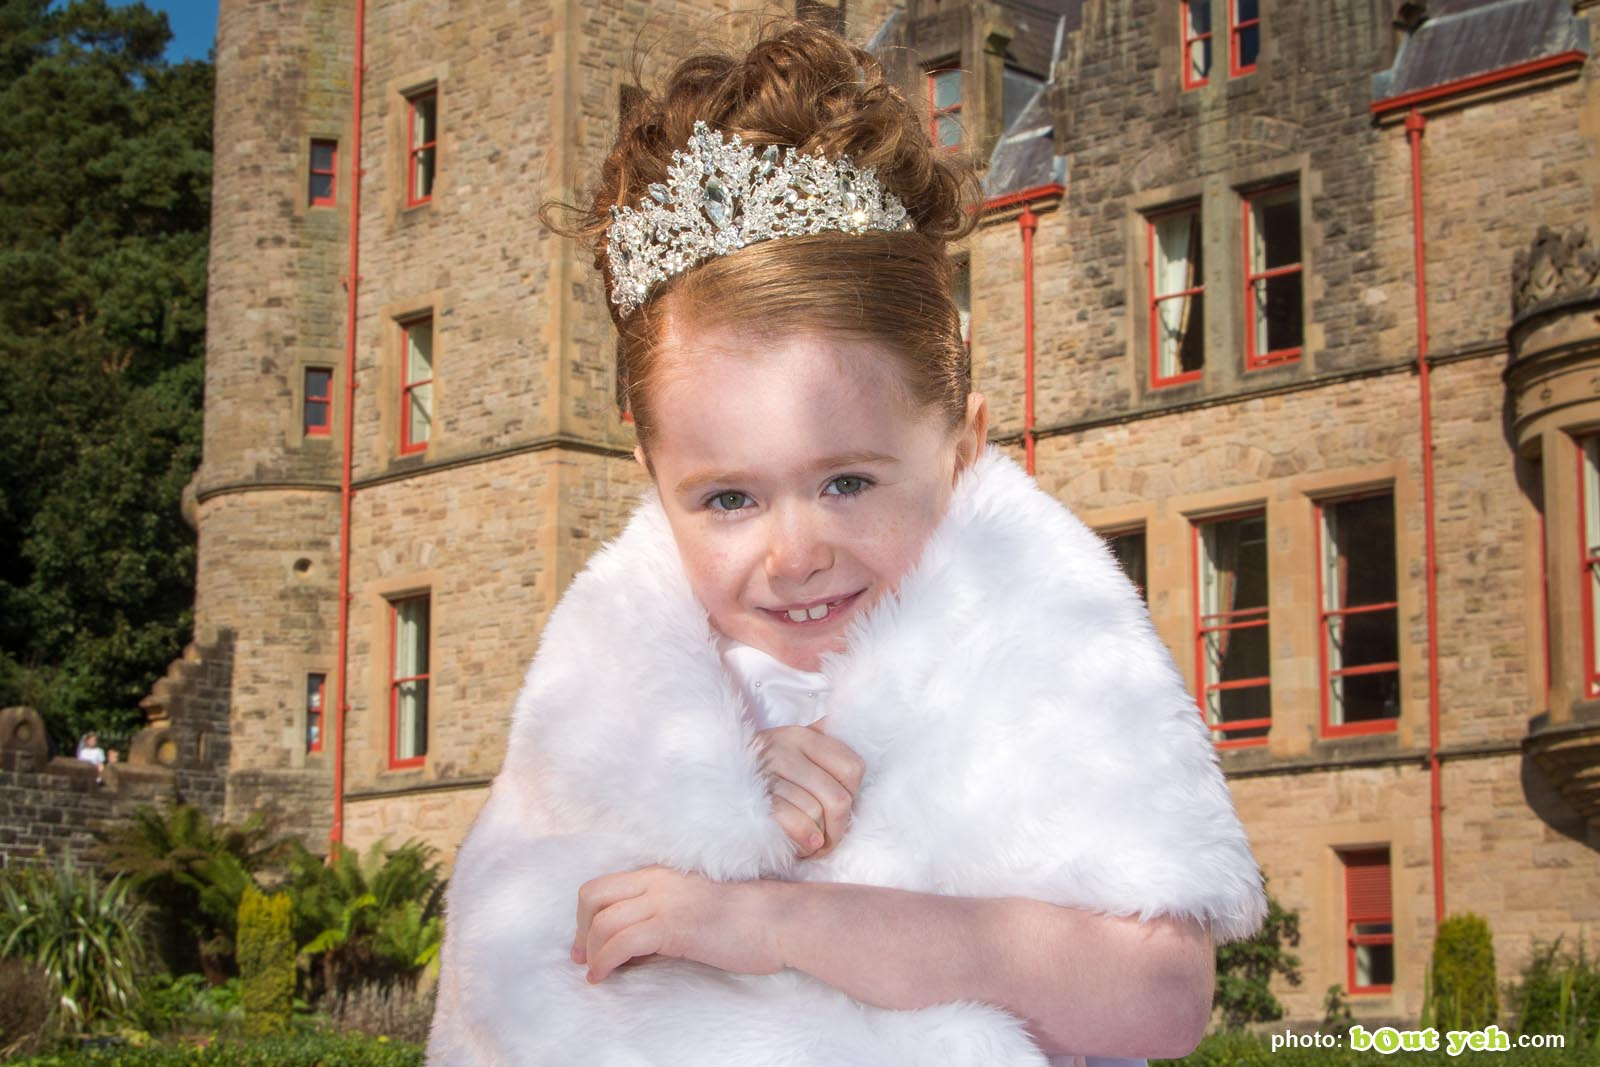 First Communion photography at Belfast Castle by Bout Yeh, Belfast, Northern Ireland - photo 2499